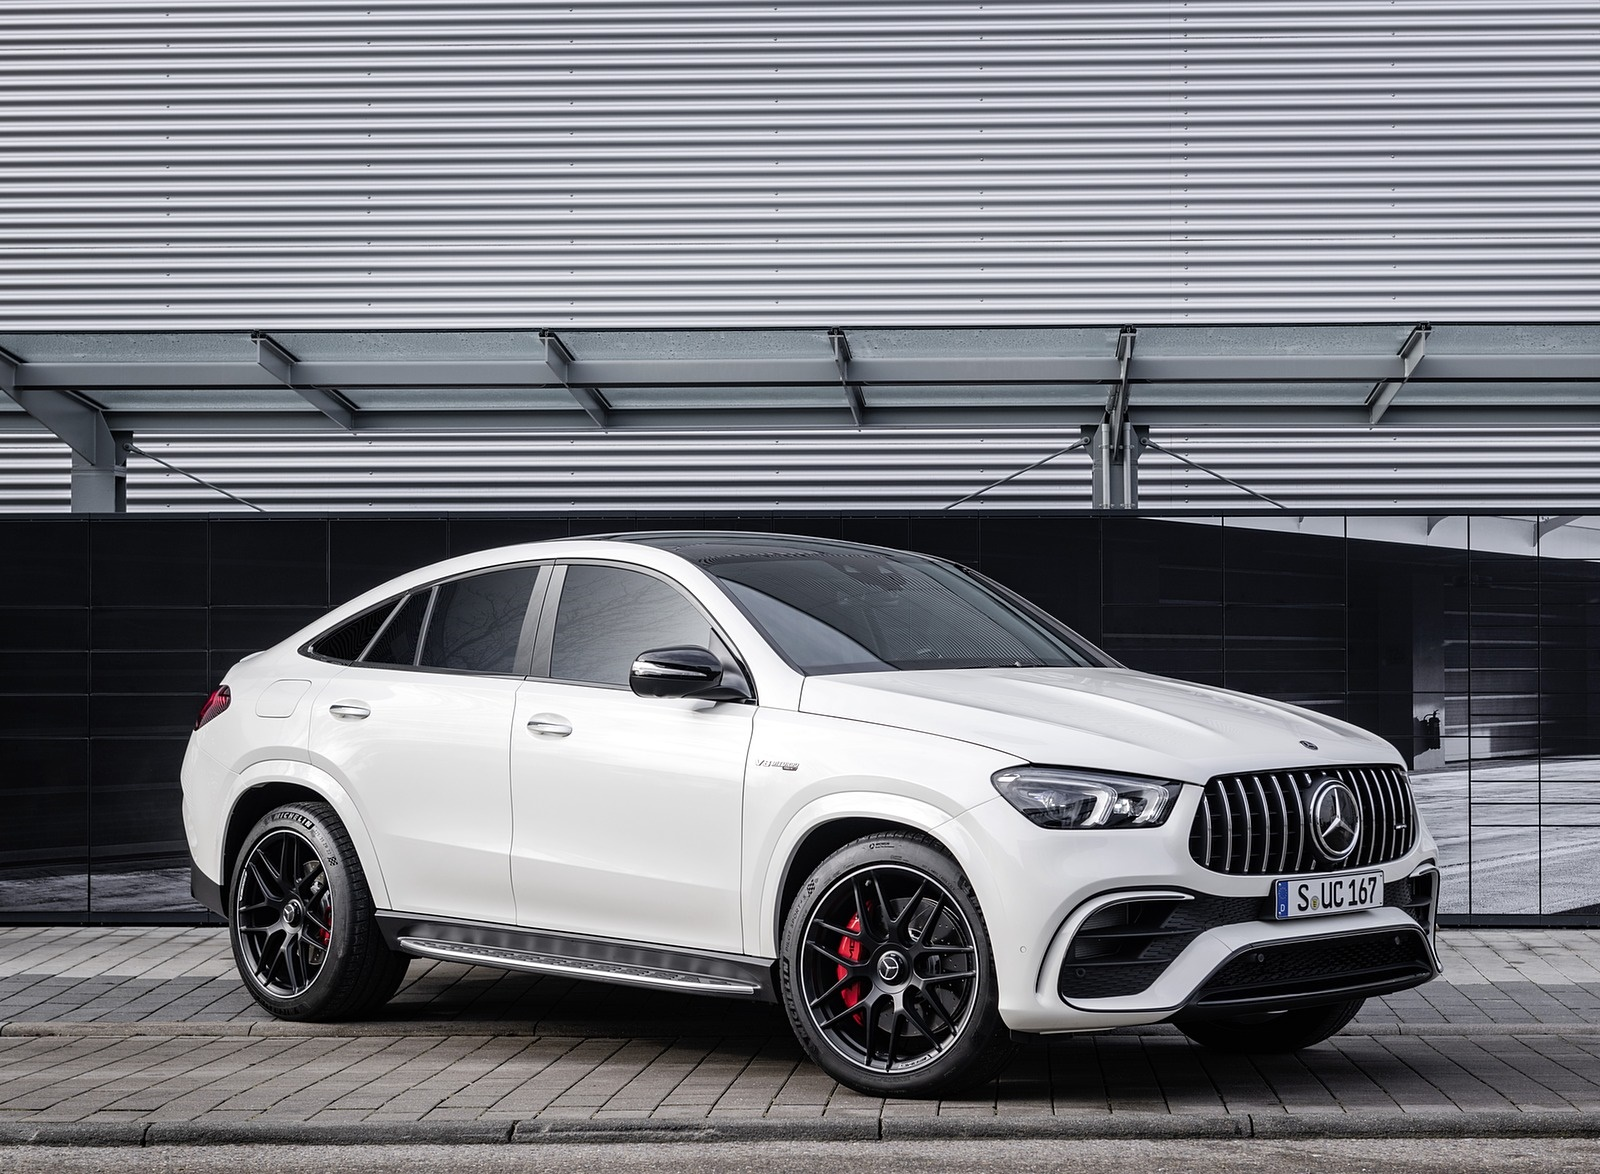 2021 Mercedes-AMG GLE 63 S 4MATIC+ Coupe (Color: Diamond White) Front Three-Quarter Wallpapers (10)